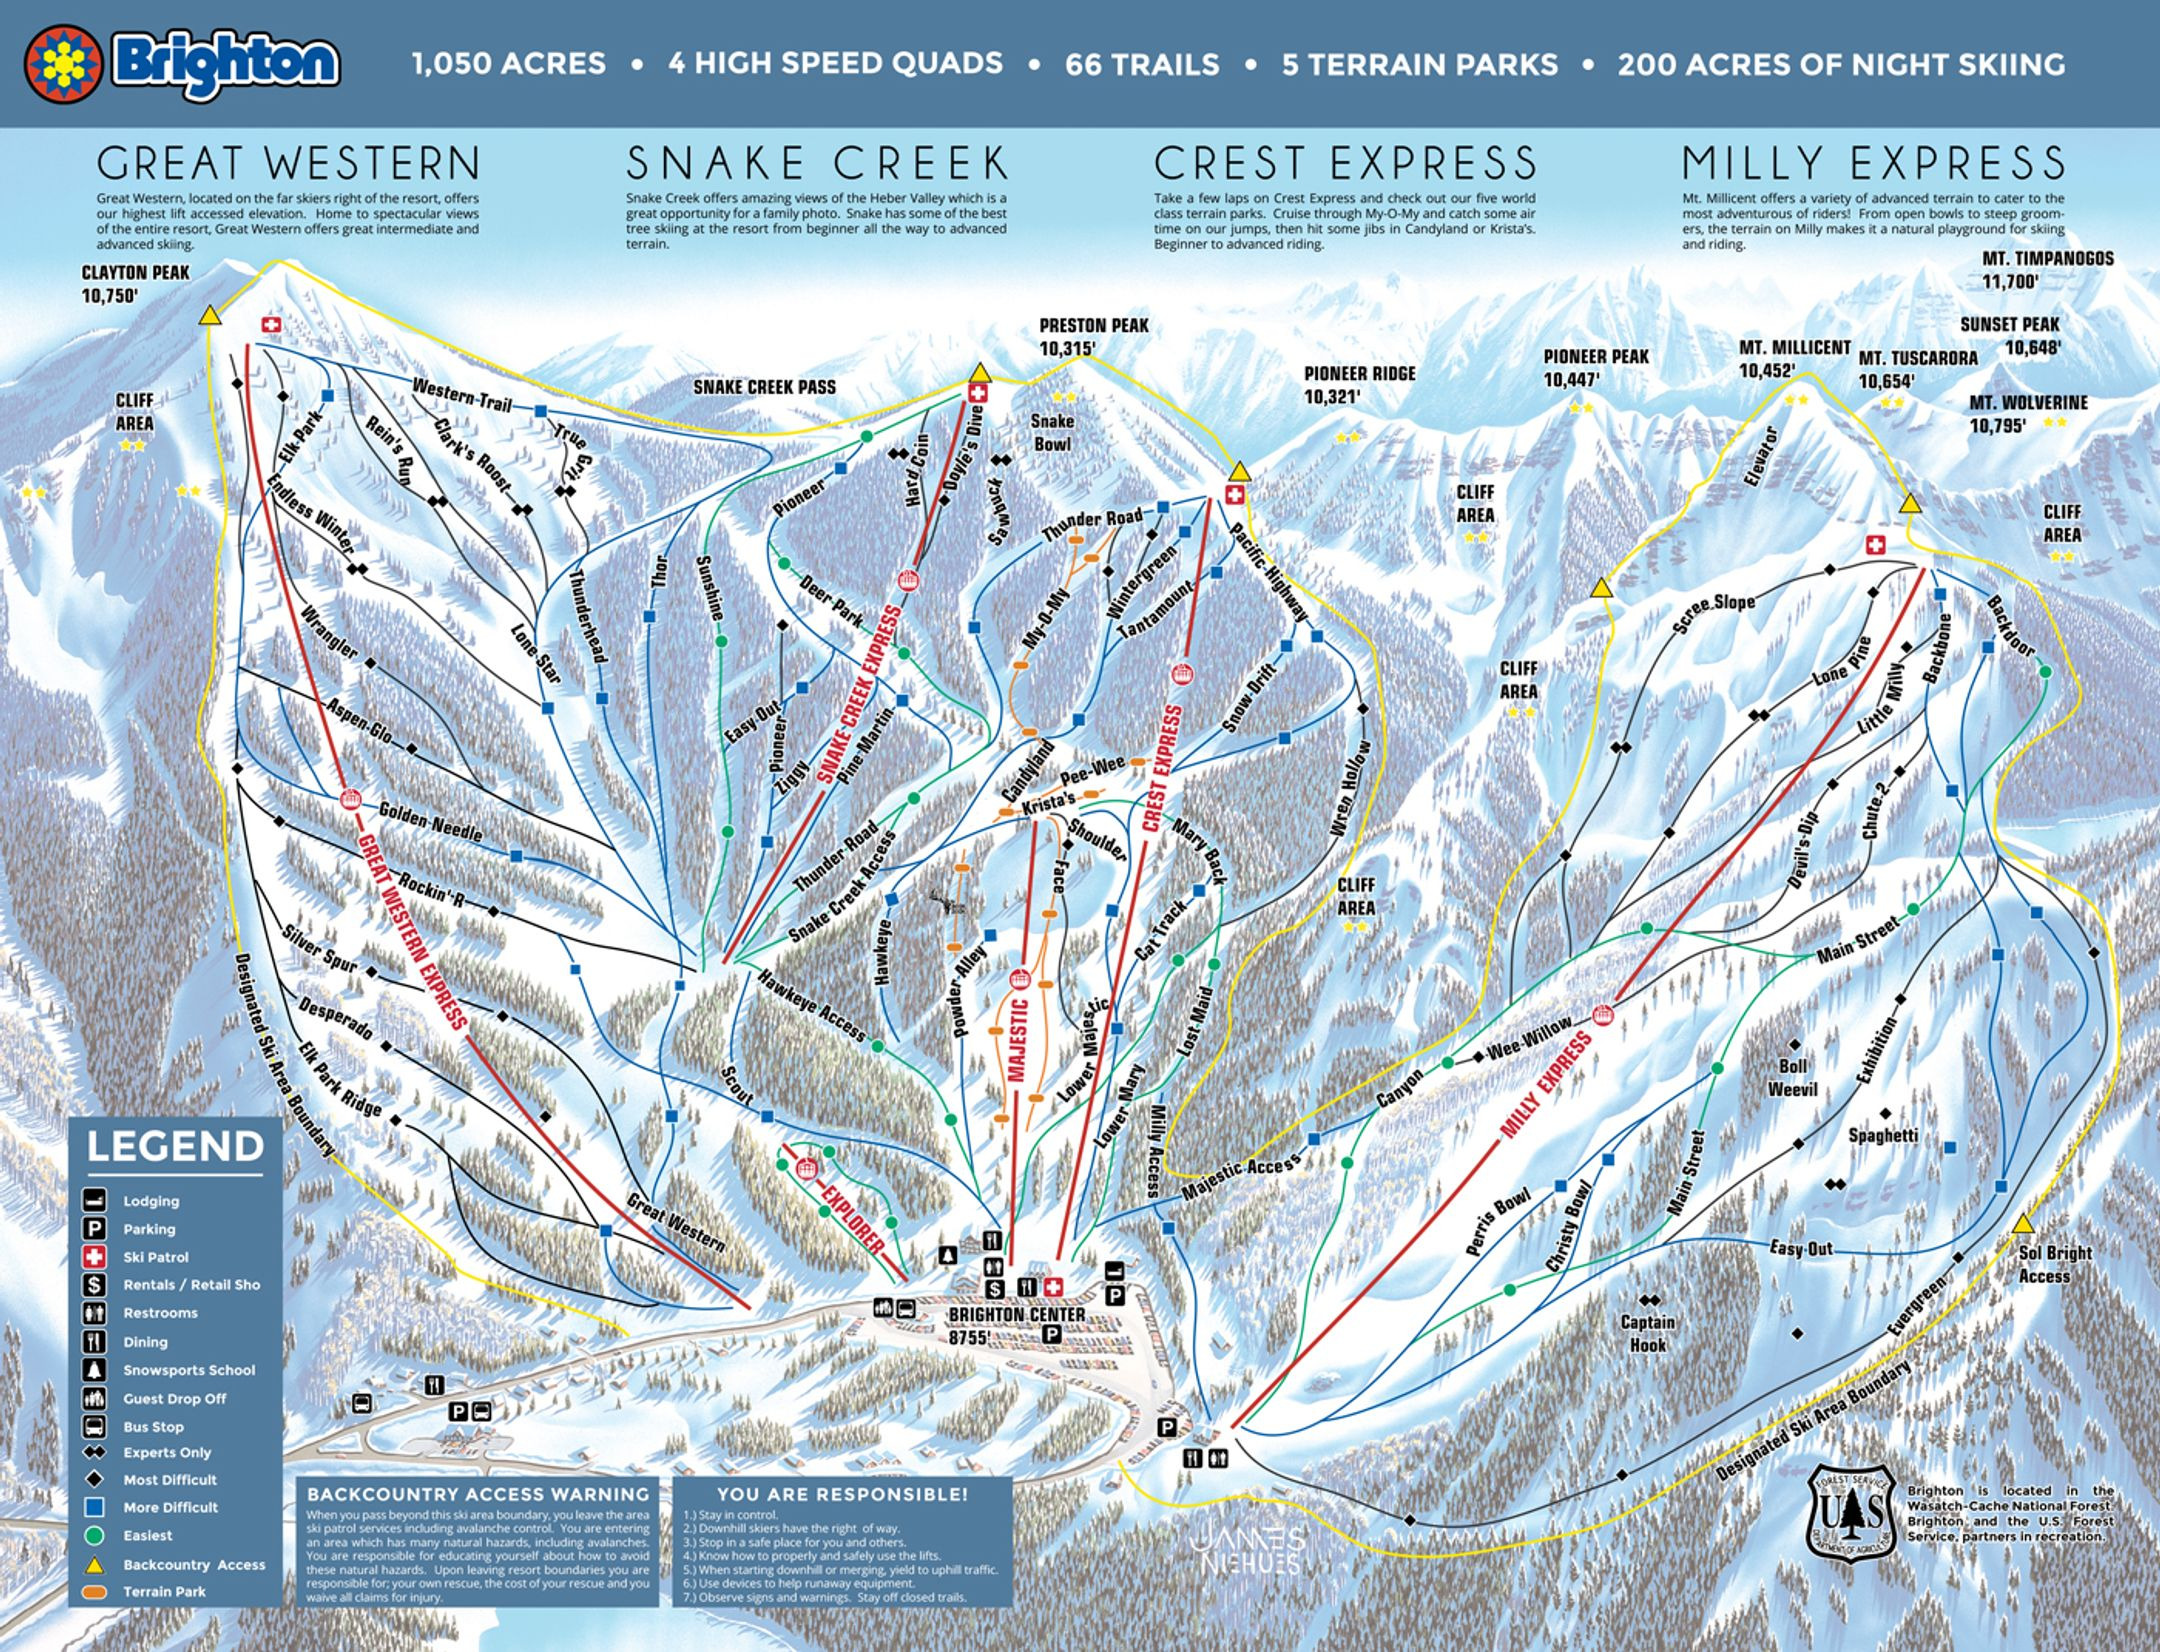 Brighton ski-resort-trail-map United States ripatrip